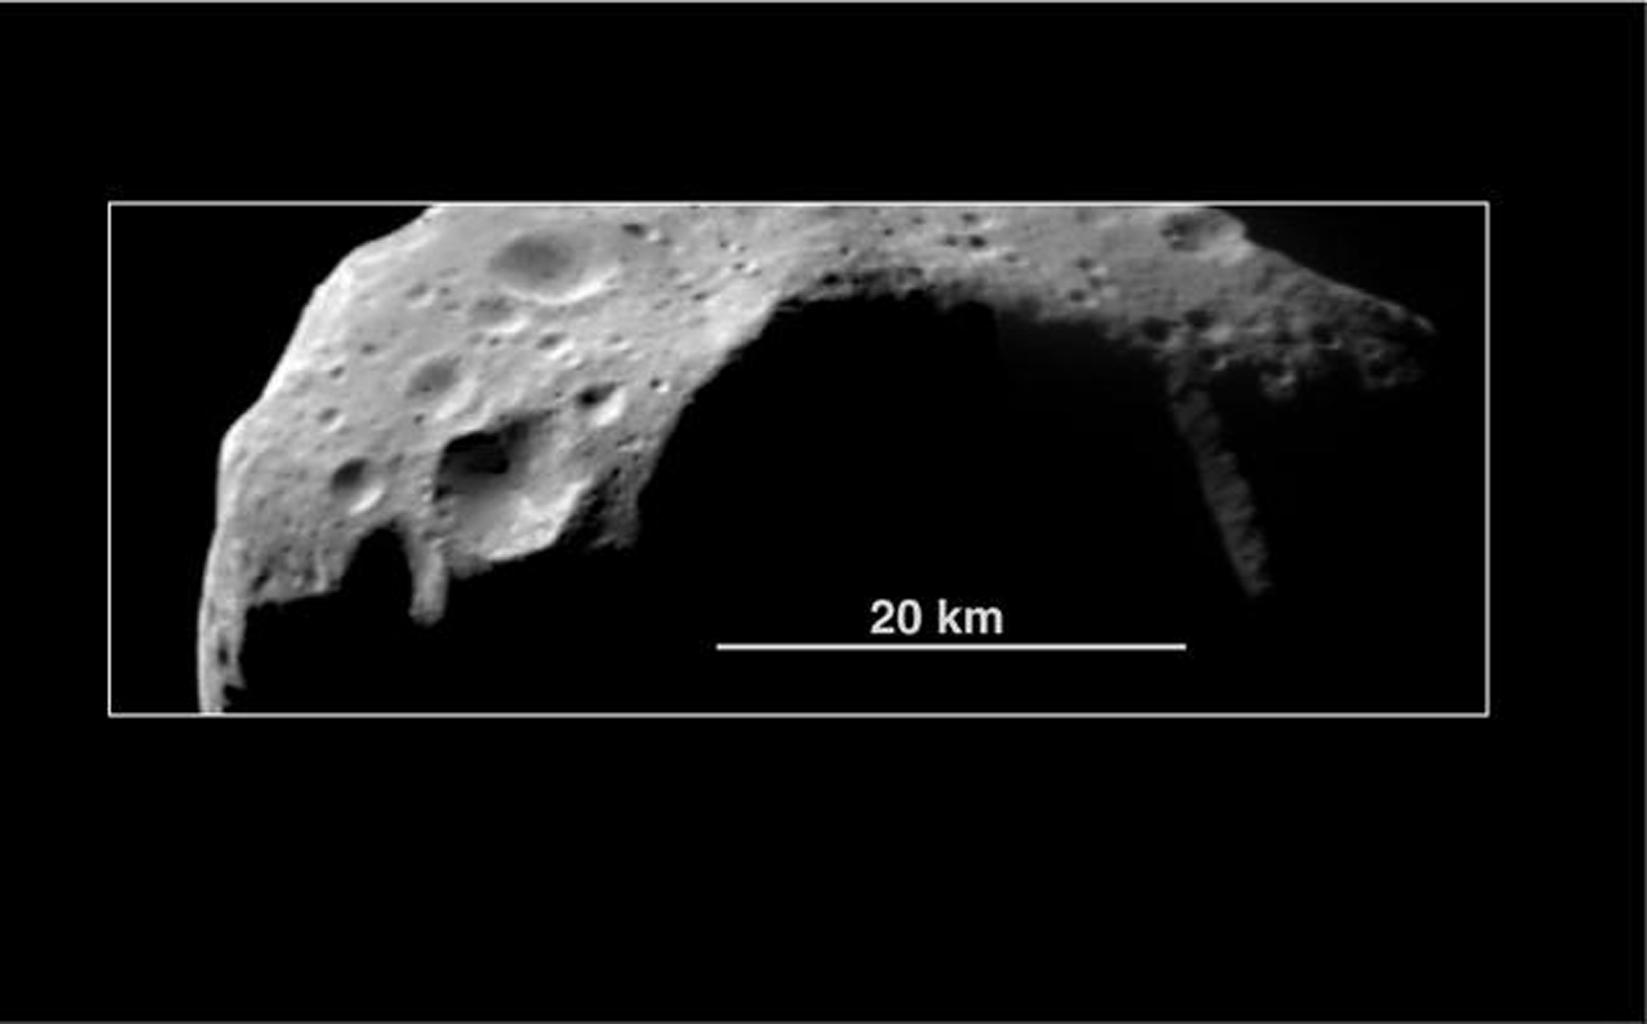 This image of asteroid 253 Mathilde was returned by NASA's NEAR Shoemaker spacecraft in 1997. Raised crater rims suggest that some of the material ejected from these craters traveled only short distances before falling back to the surface.